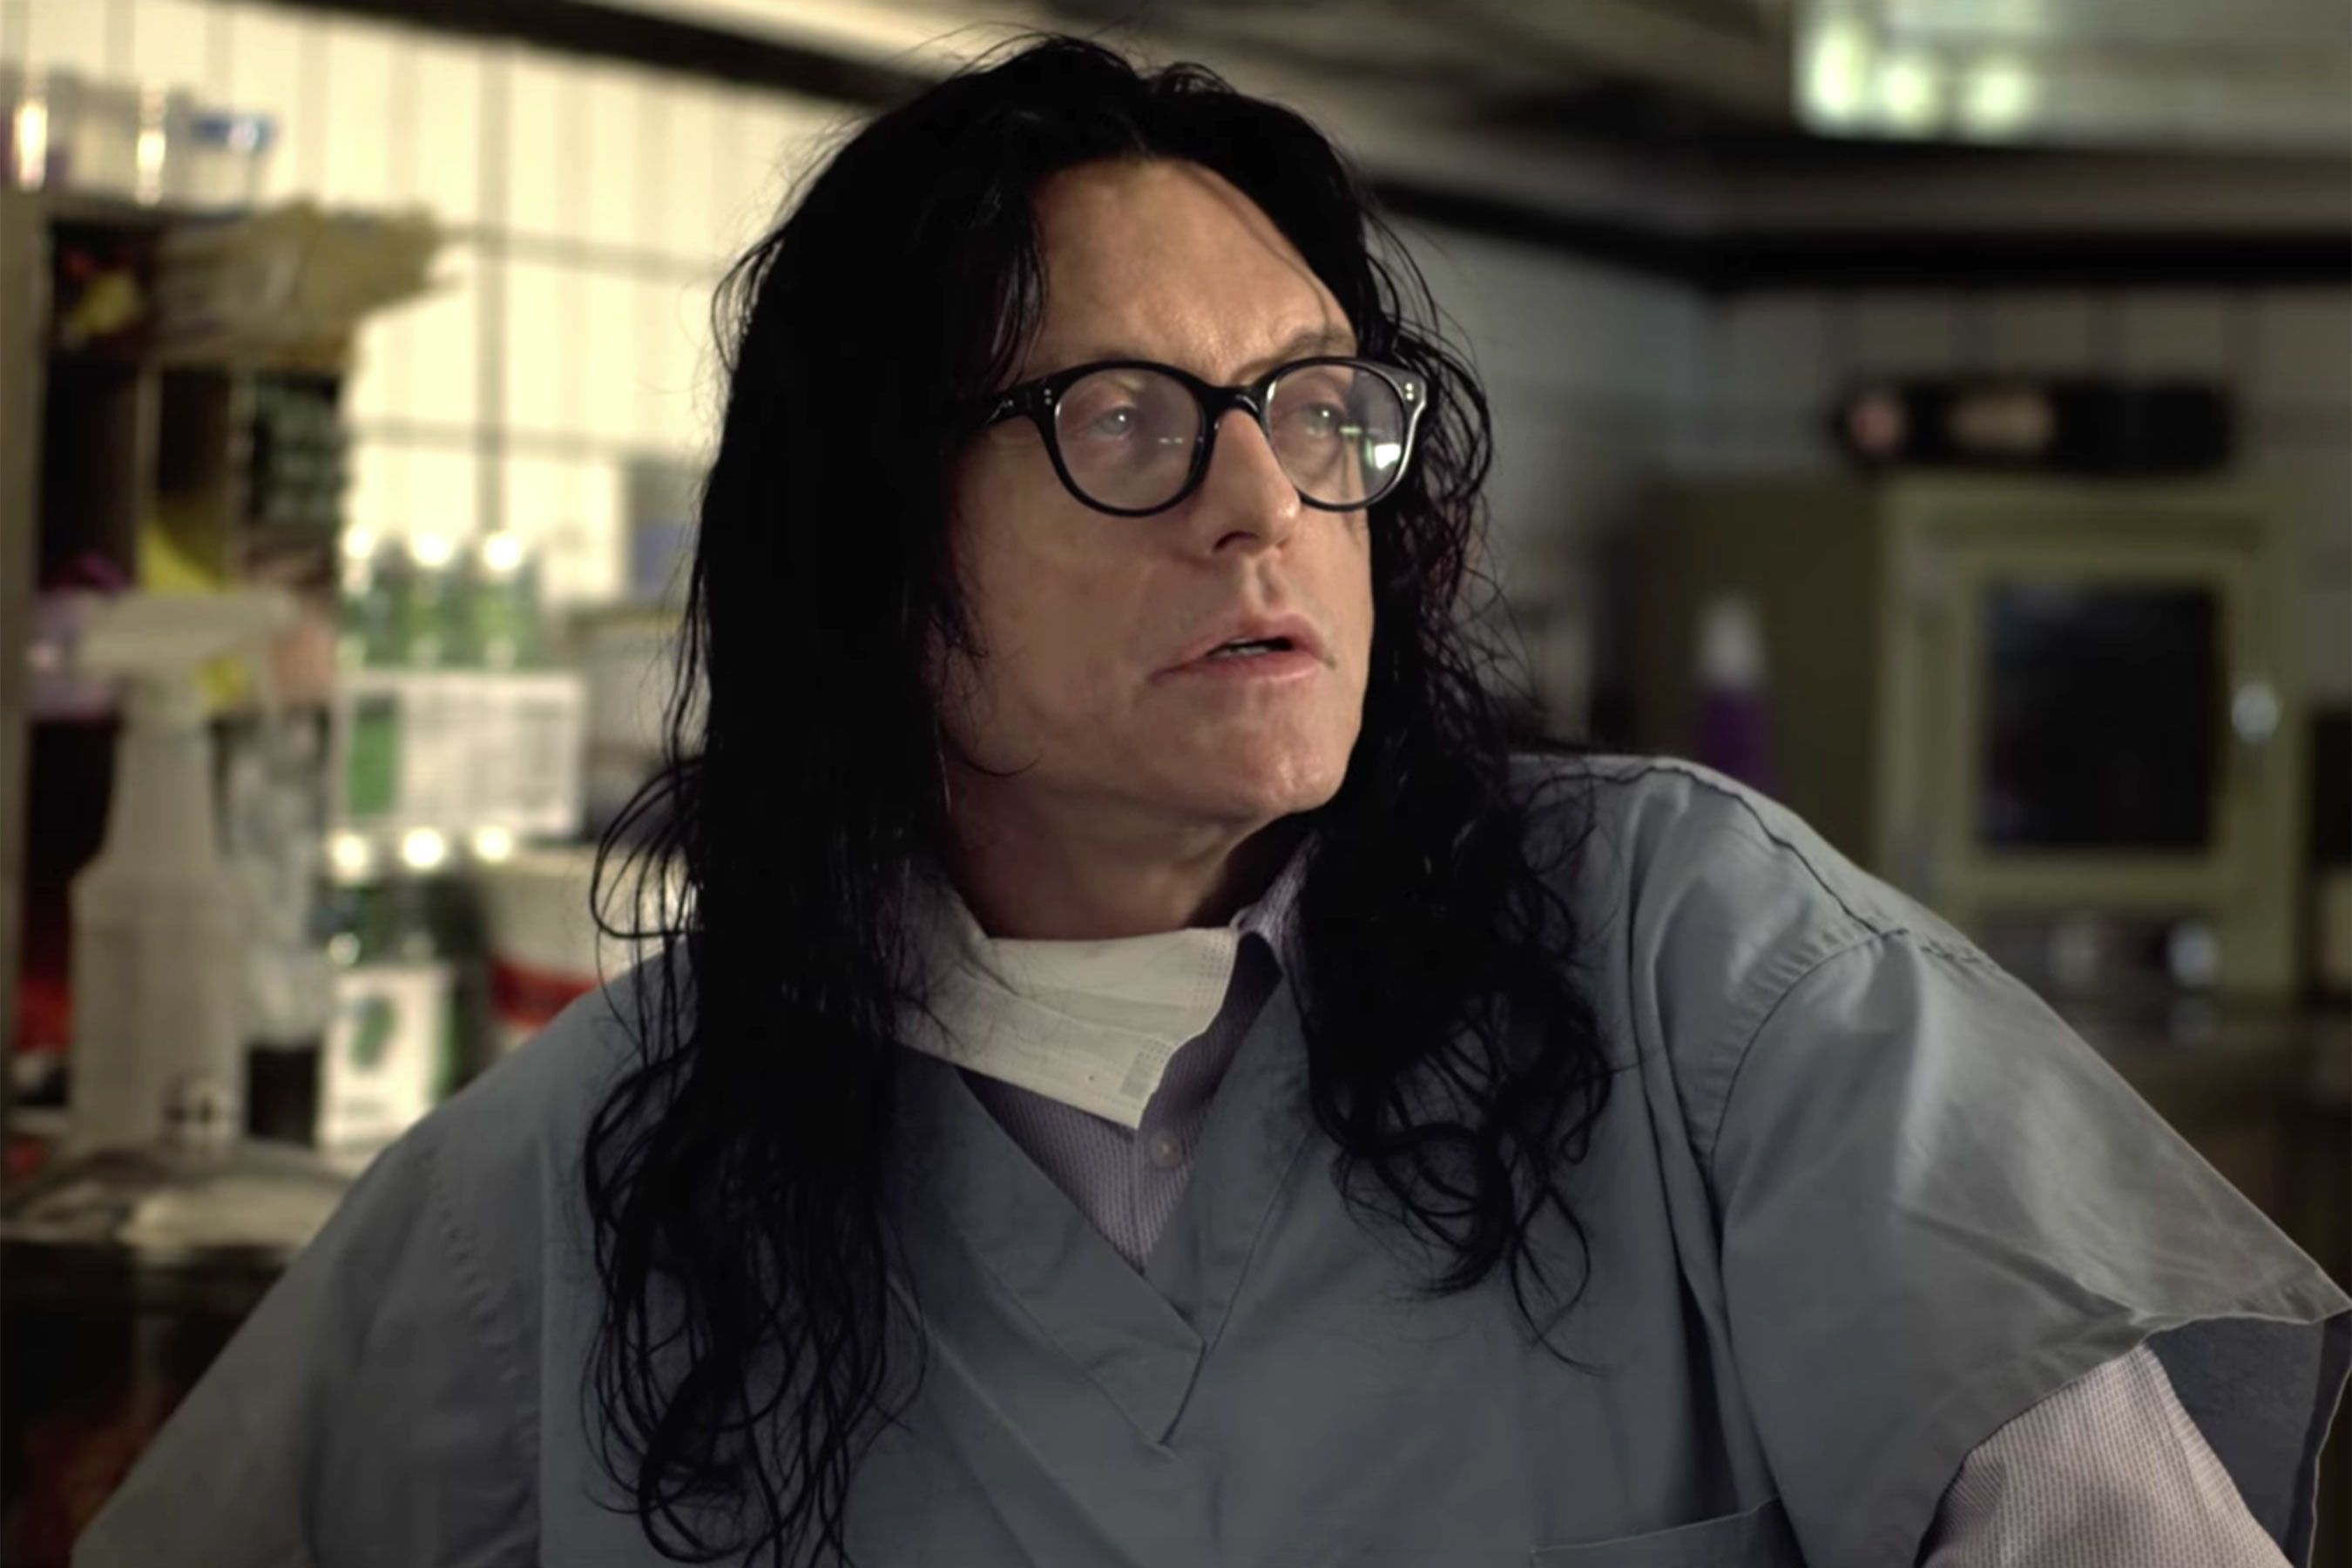 'The Room' stars Tommy Wiseau and Greg Sestero are 'Best F